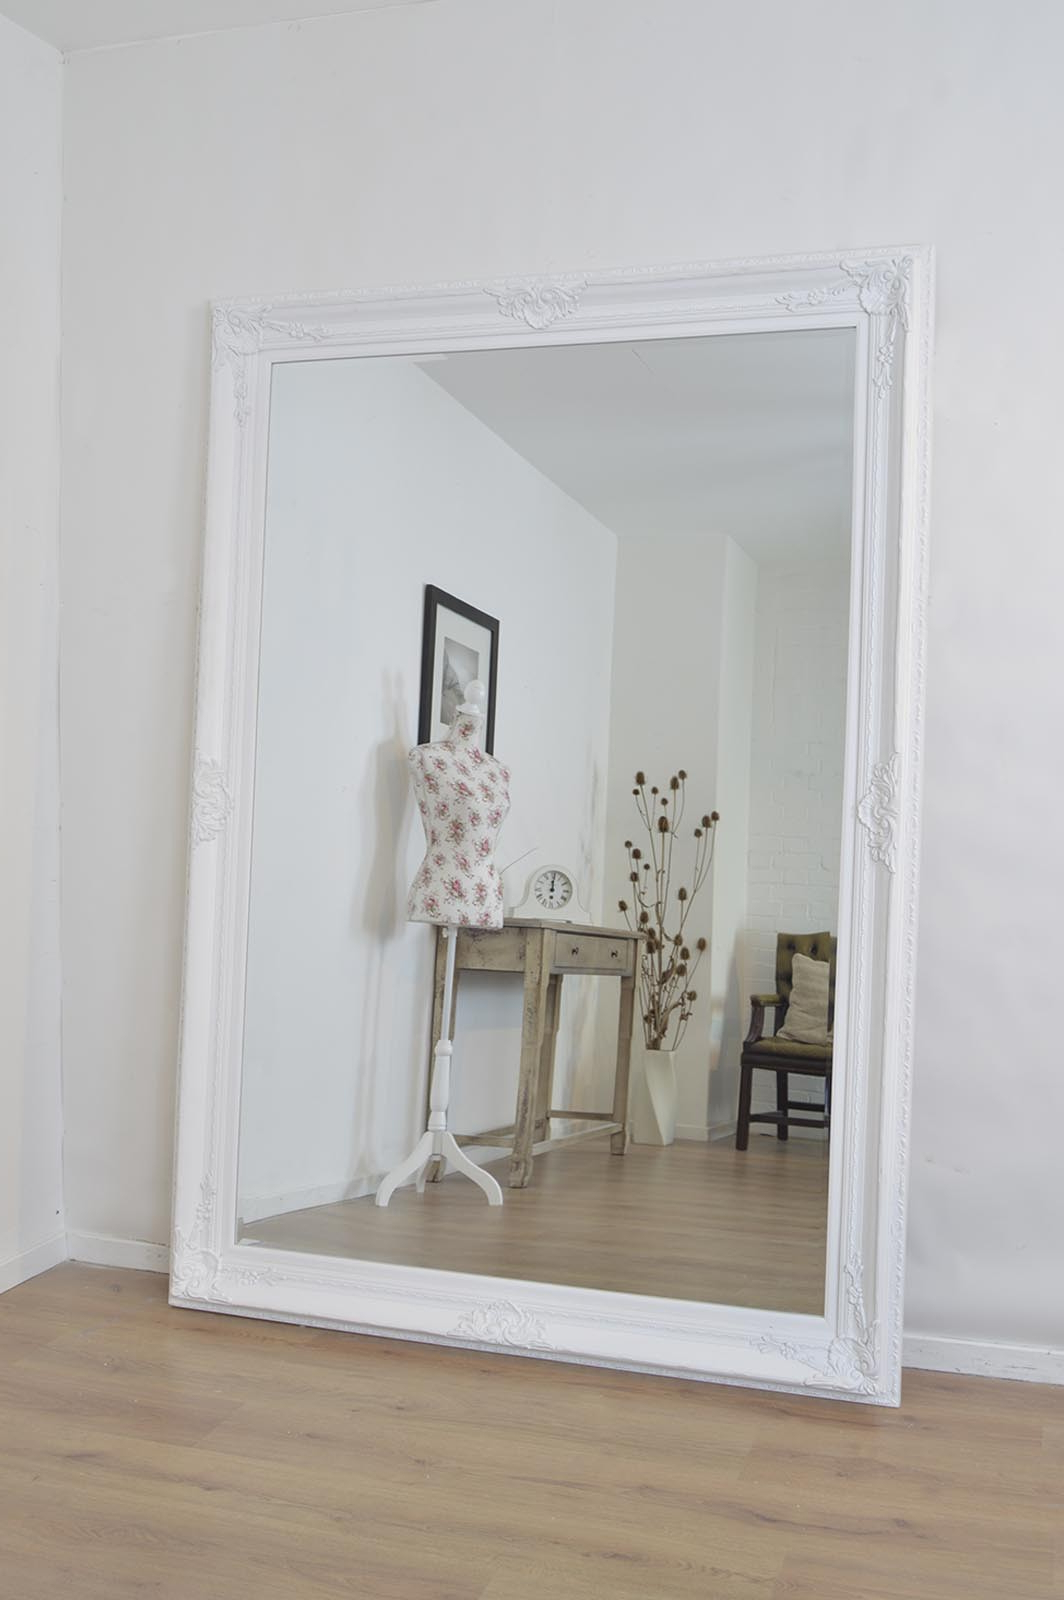 Preferred Large White Wall Mirror V Sanctuarycom Decorative Mirrors Inside Large White Framed Wall Mirrors (View 2 of 20)